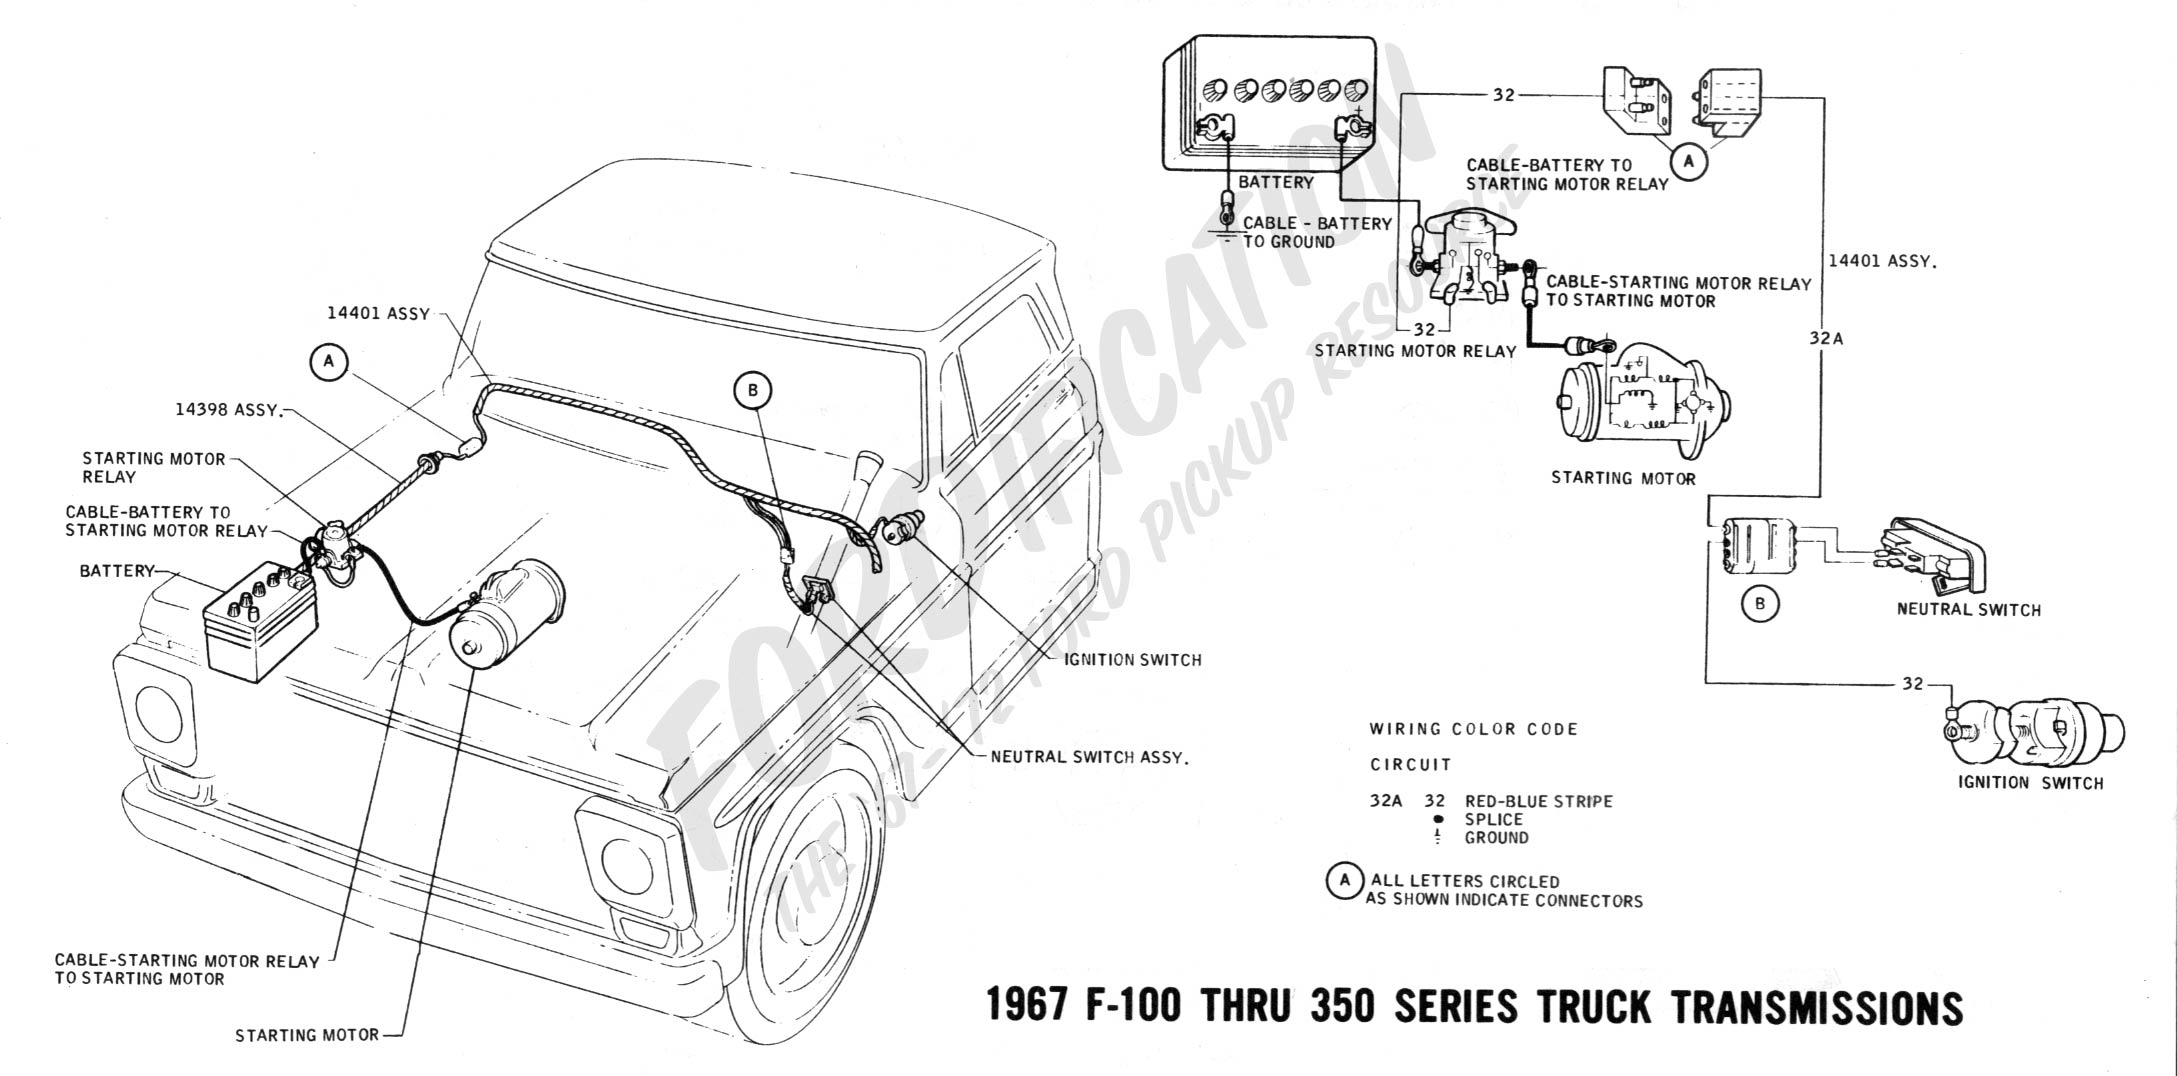 ford truck technical drawings and schematics section h wiring rh fordification com 93 Ford F700 Truck Wiring Diagrams 93 Ford F700 Truck Wiring Diagrams